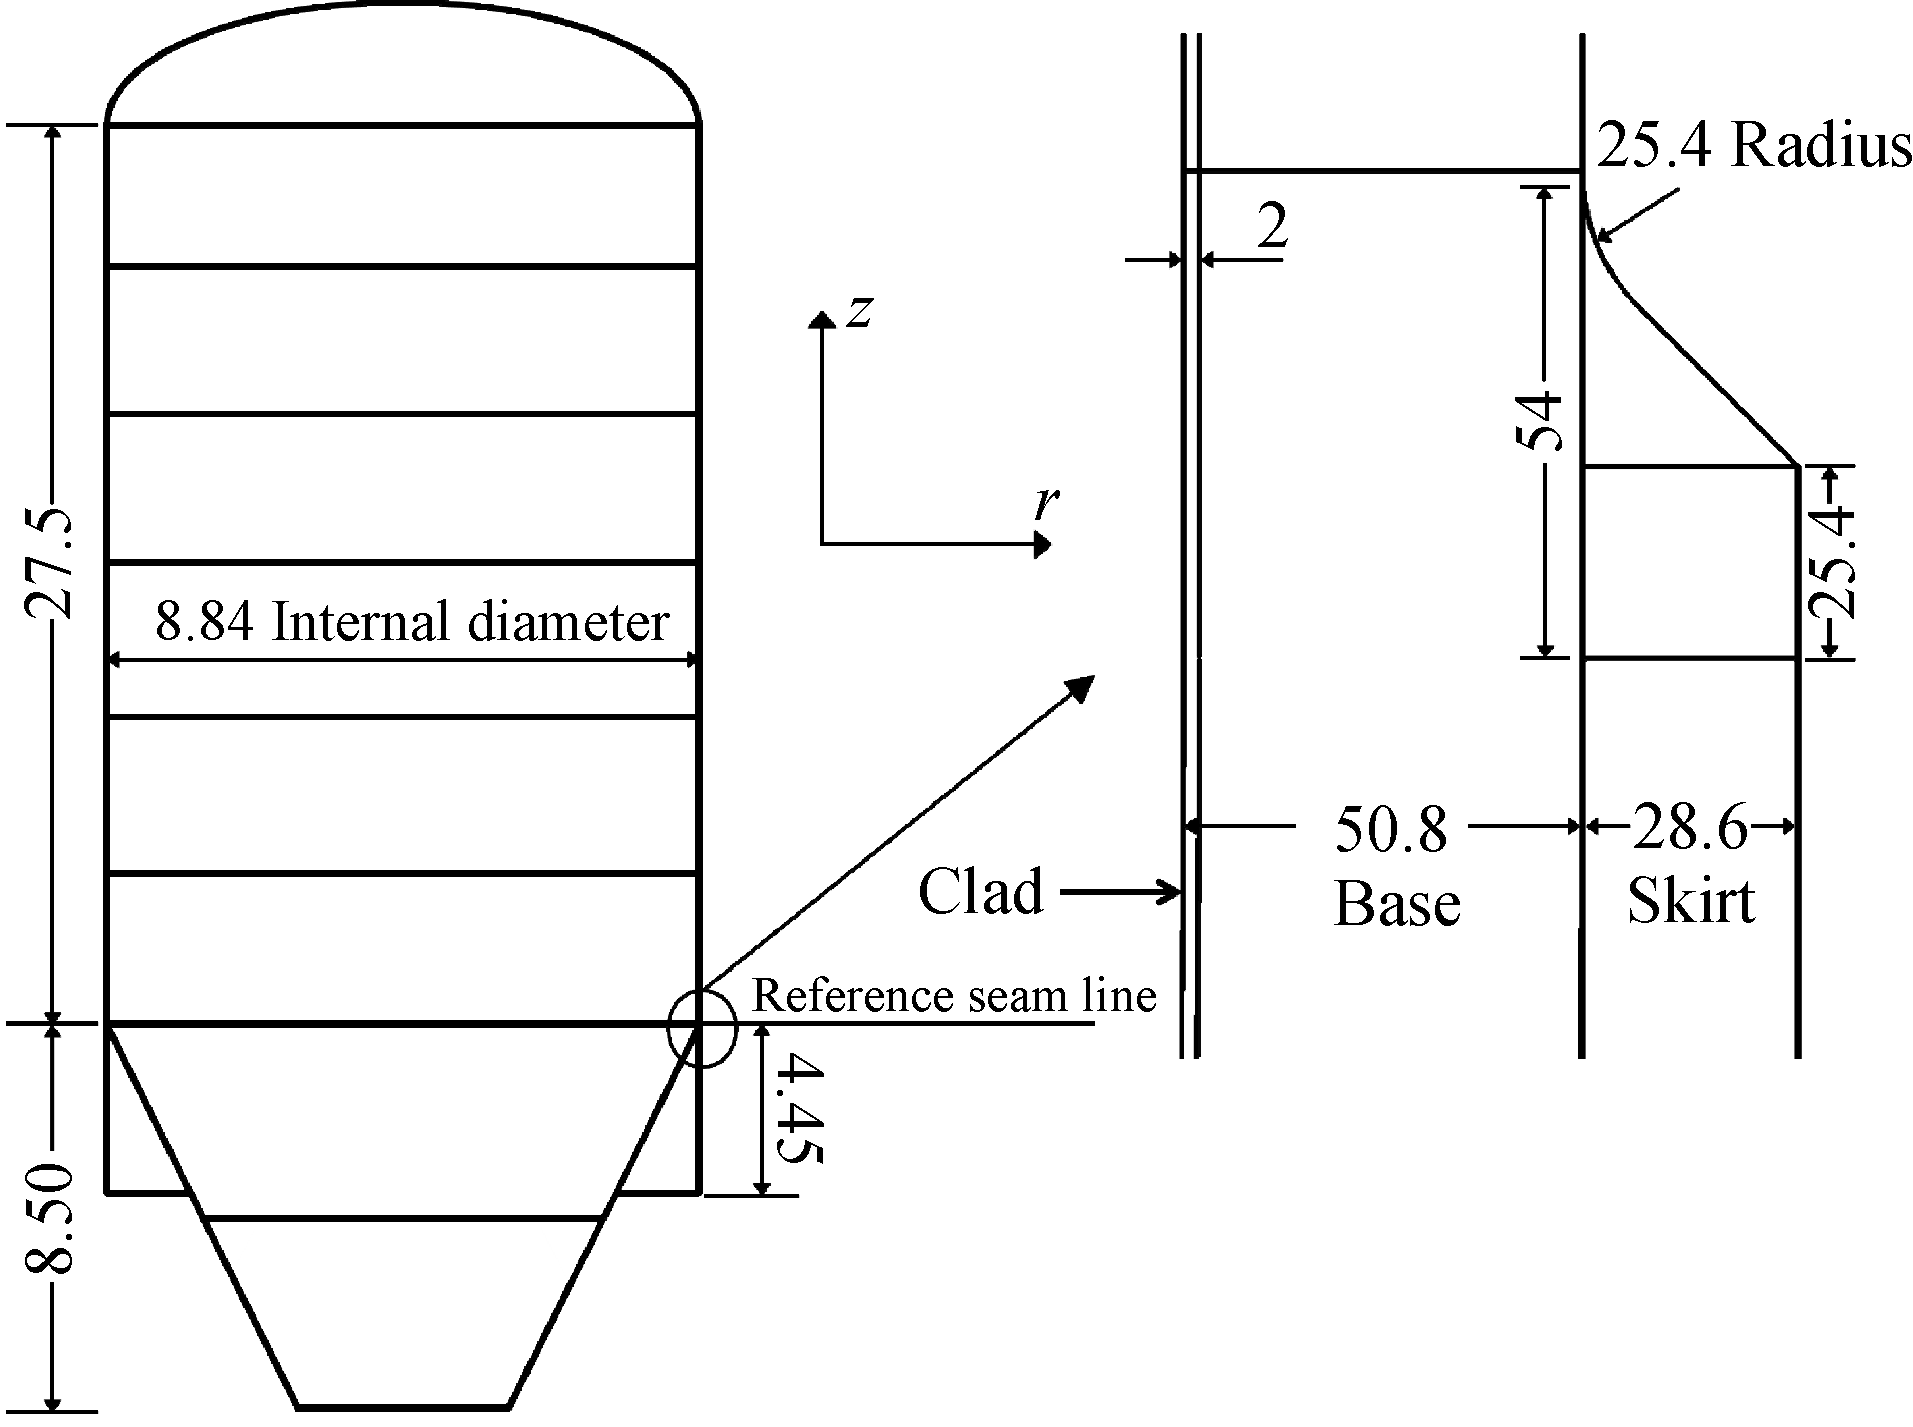 Optimal slot dimension for skirt support structure of coke drums